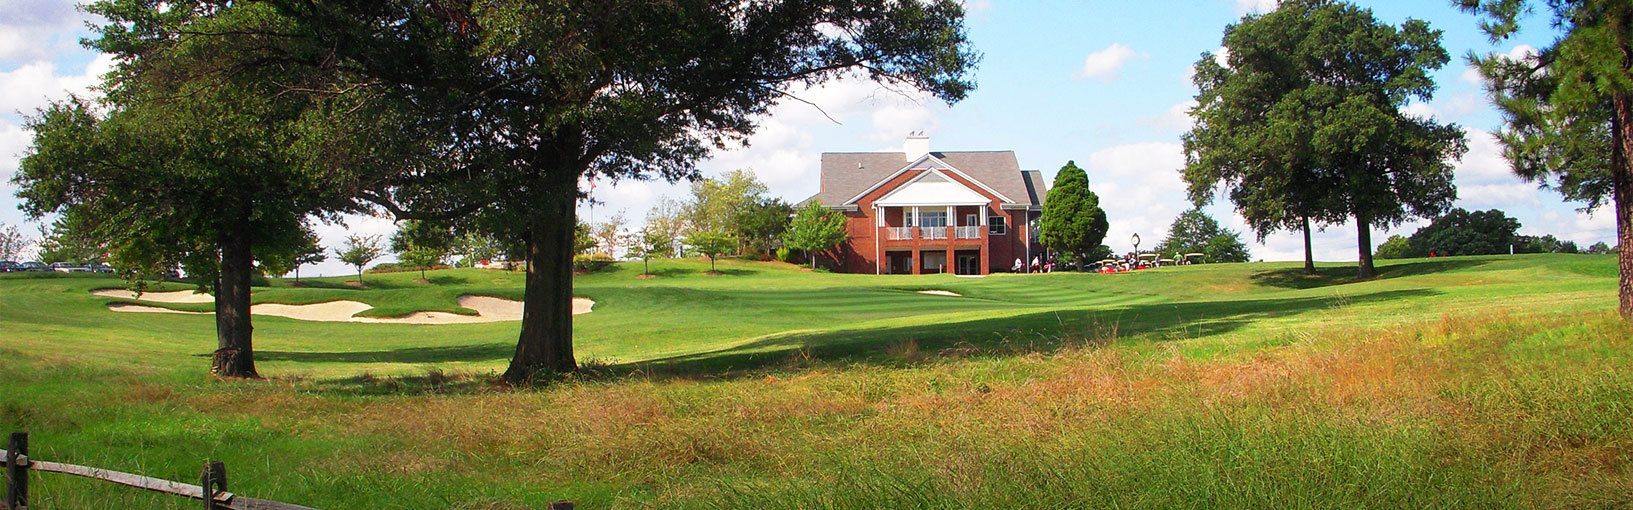 Photo of UMD Golf Course Clubhouse